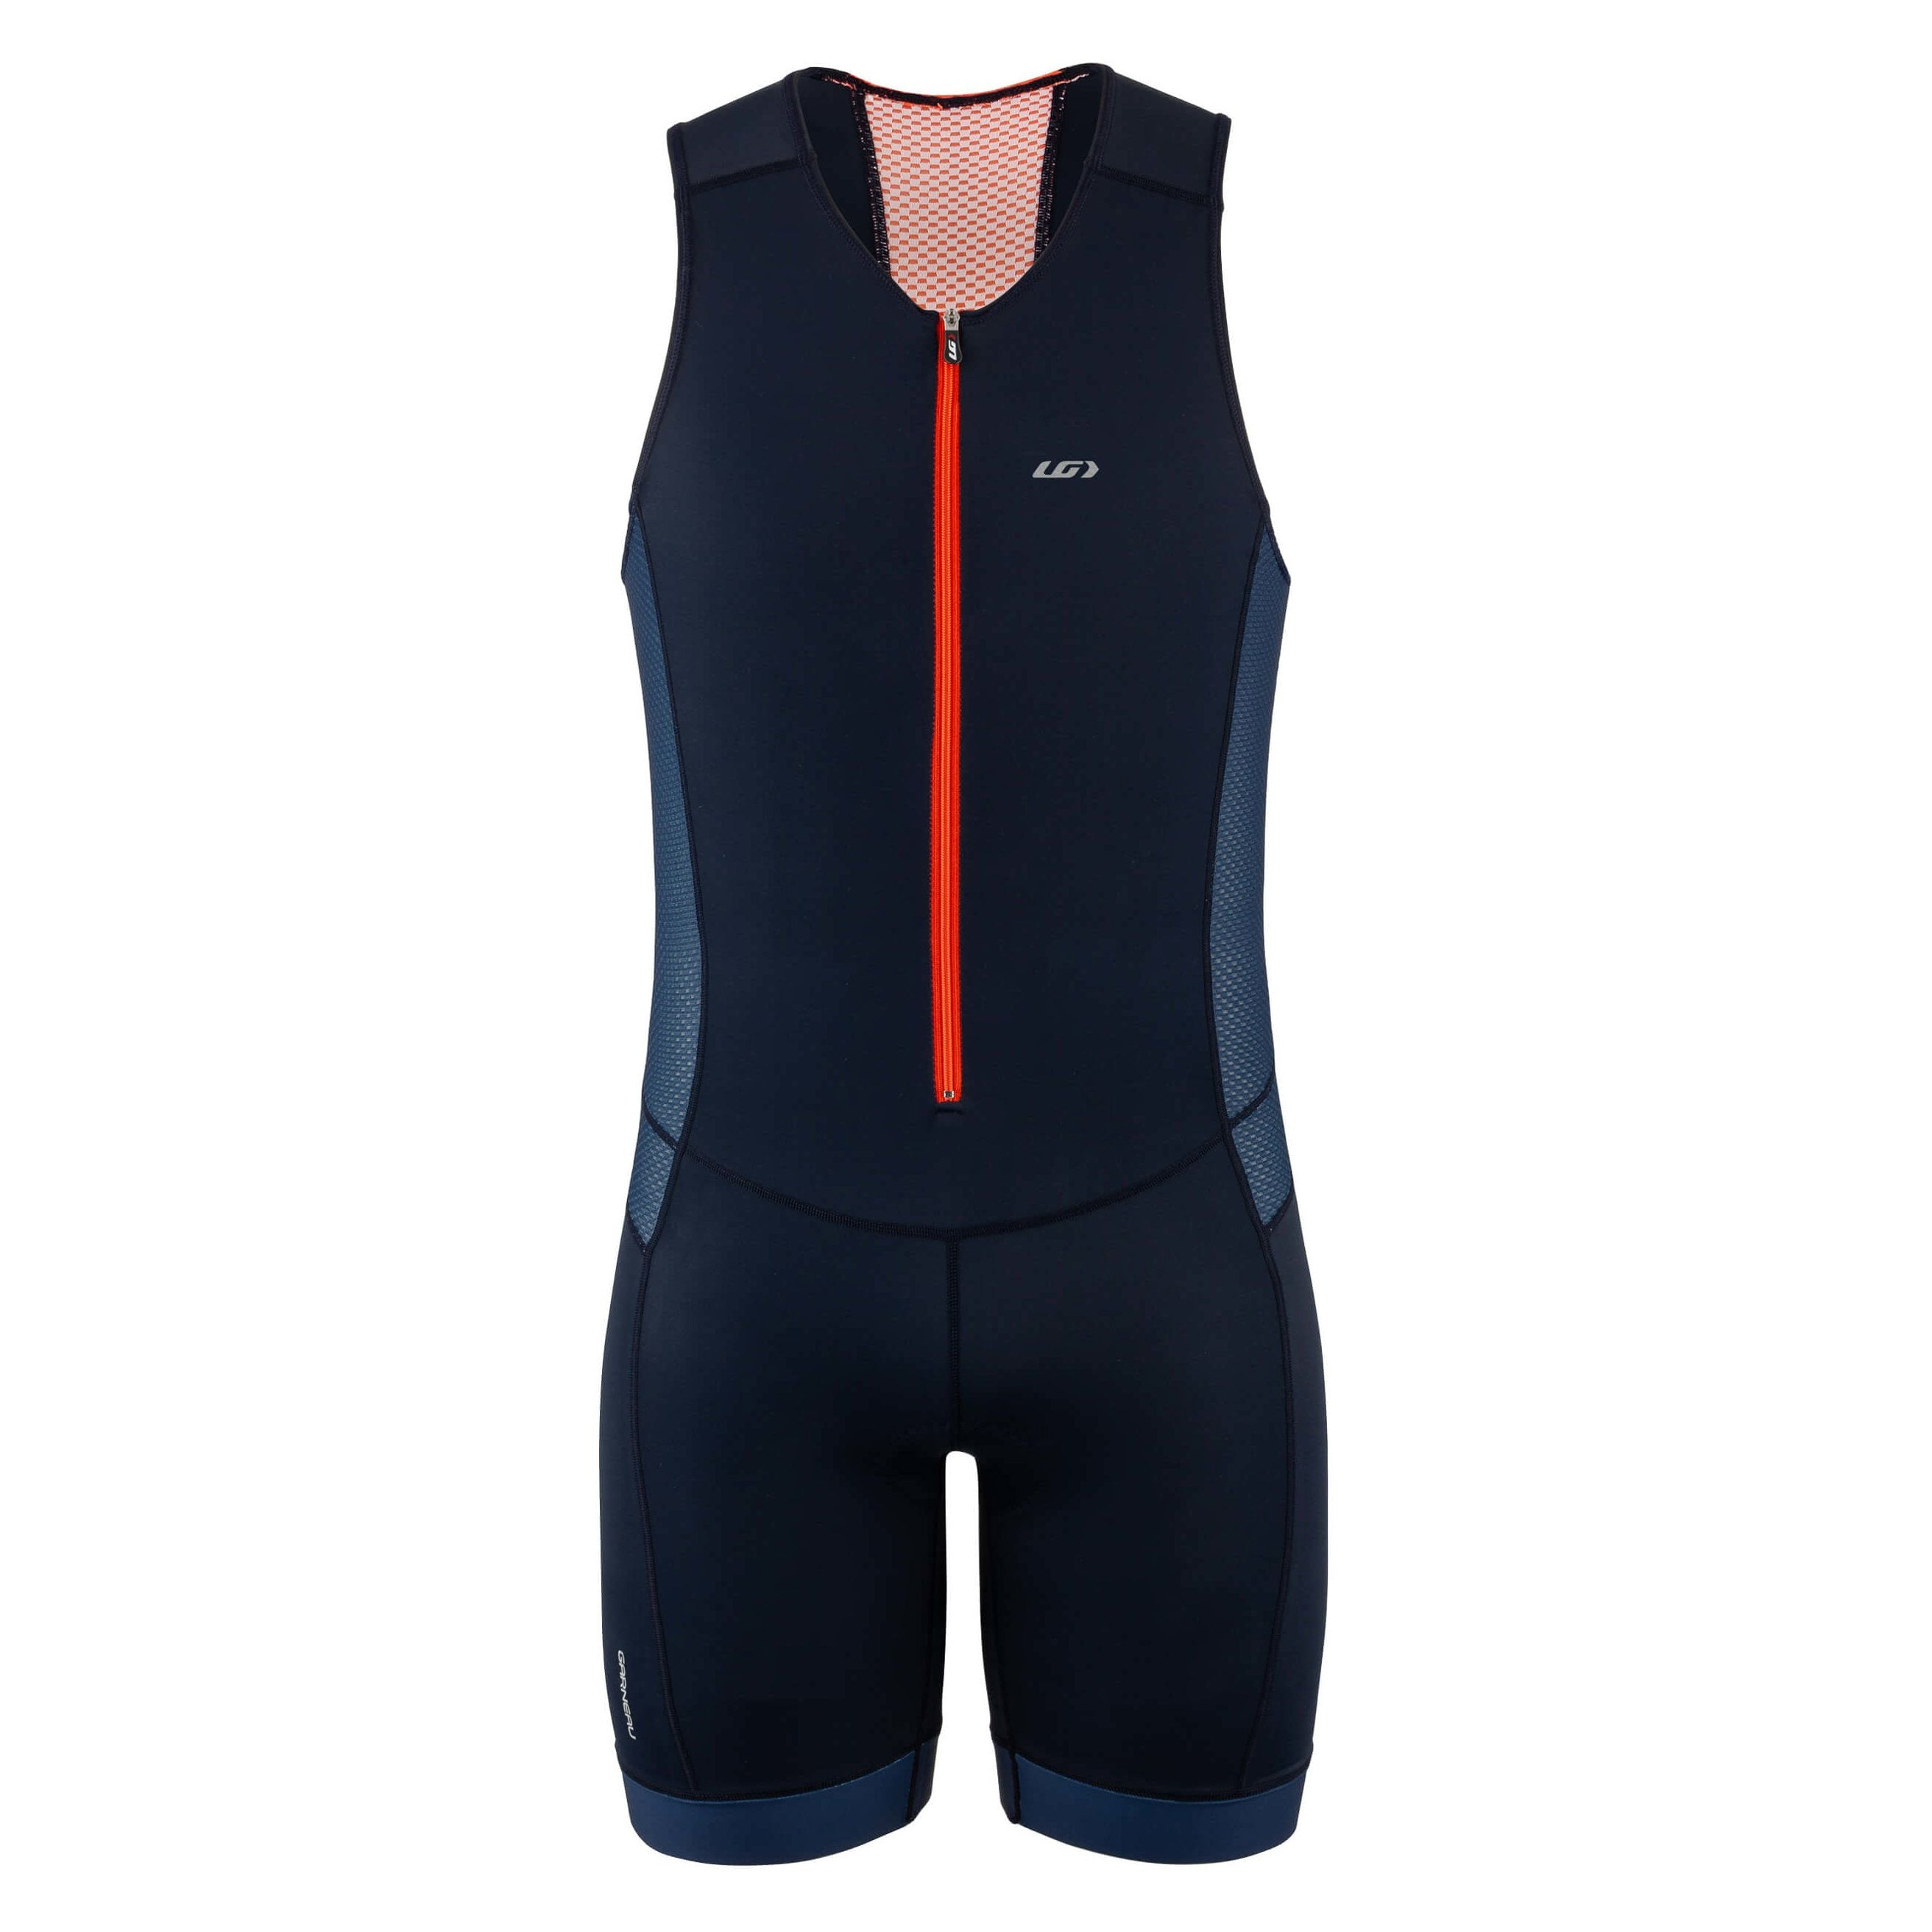 Louis Garneau Sprint Tri Suit